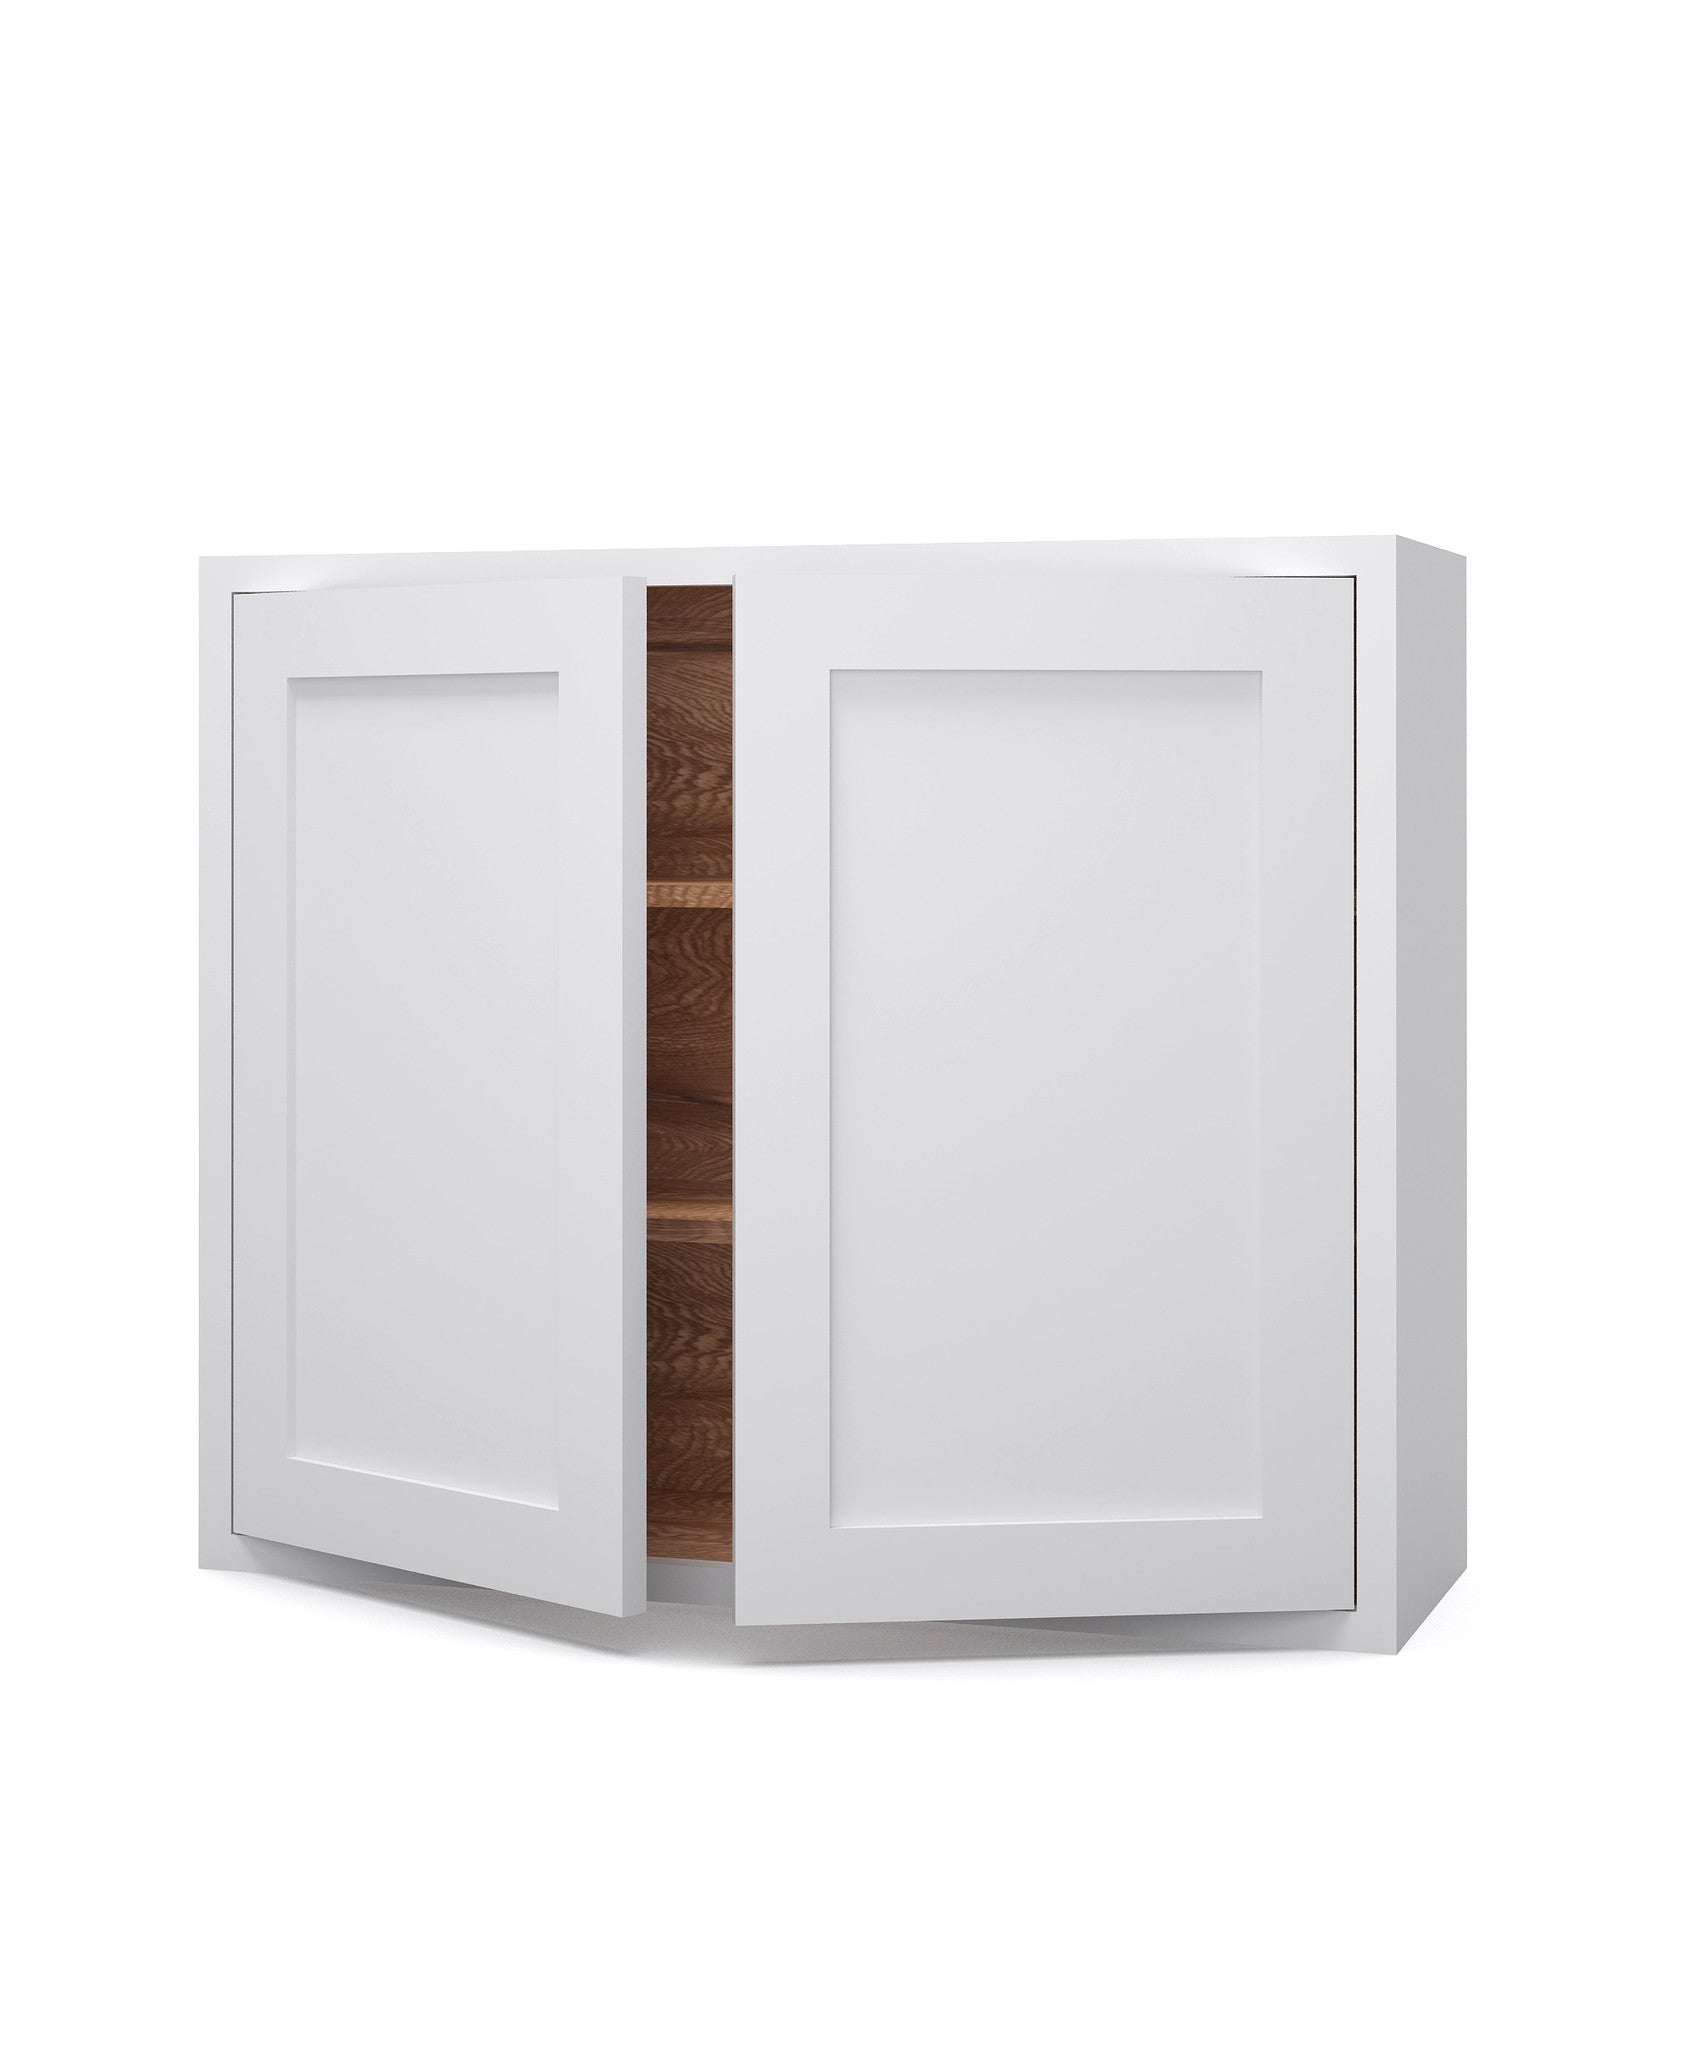 Double Door Wide Wall Cupboard   The White Kitchen Company